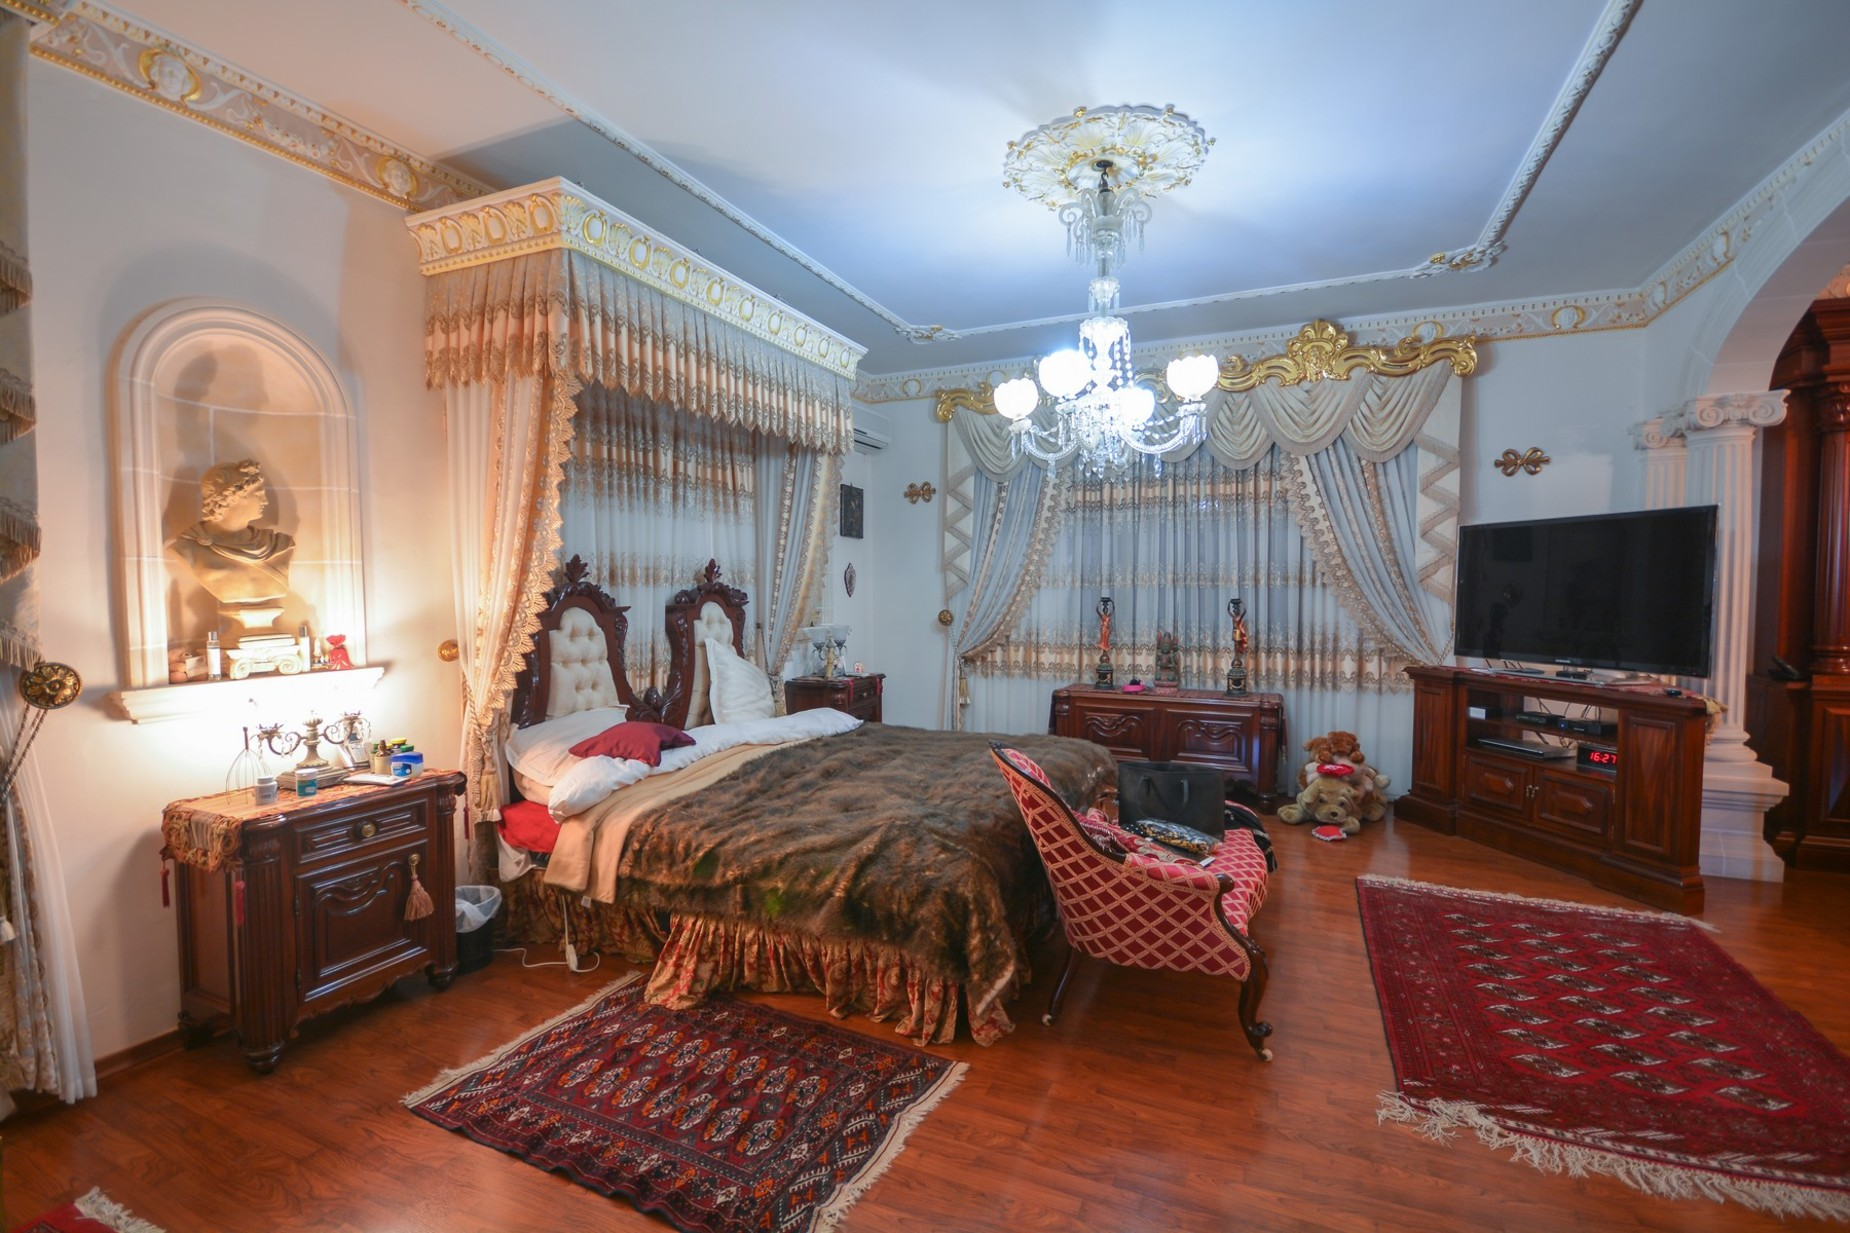 10 bed Villa For Sale in Madliena, Madliena - thumb 11